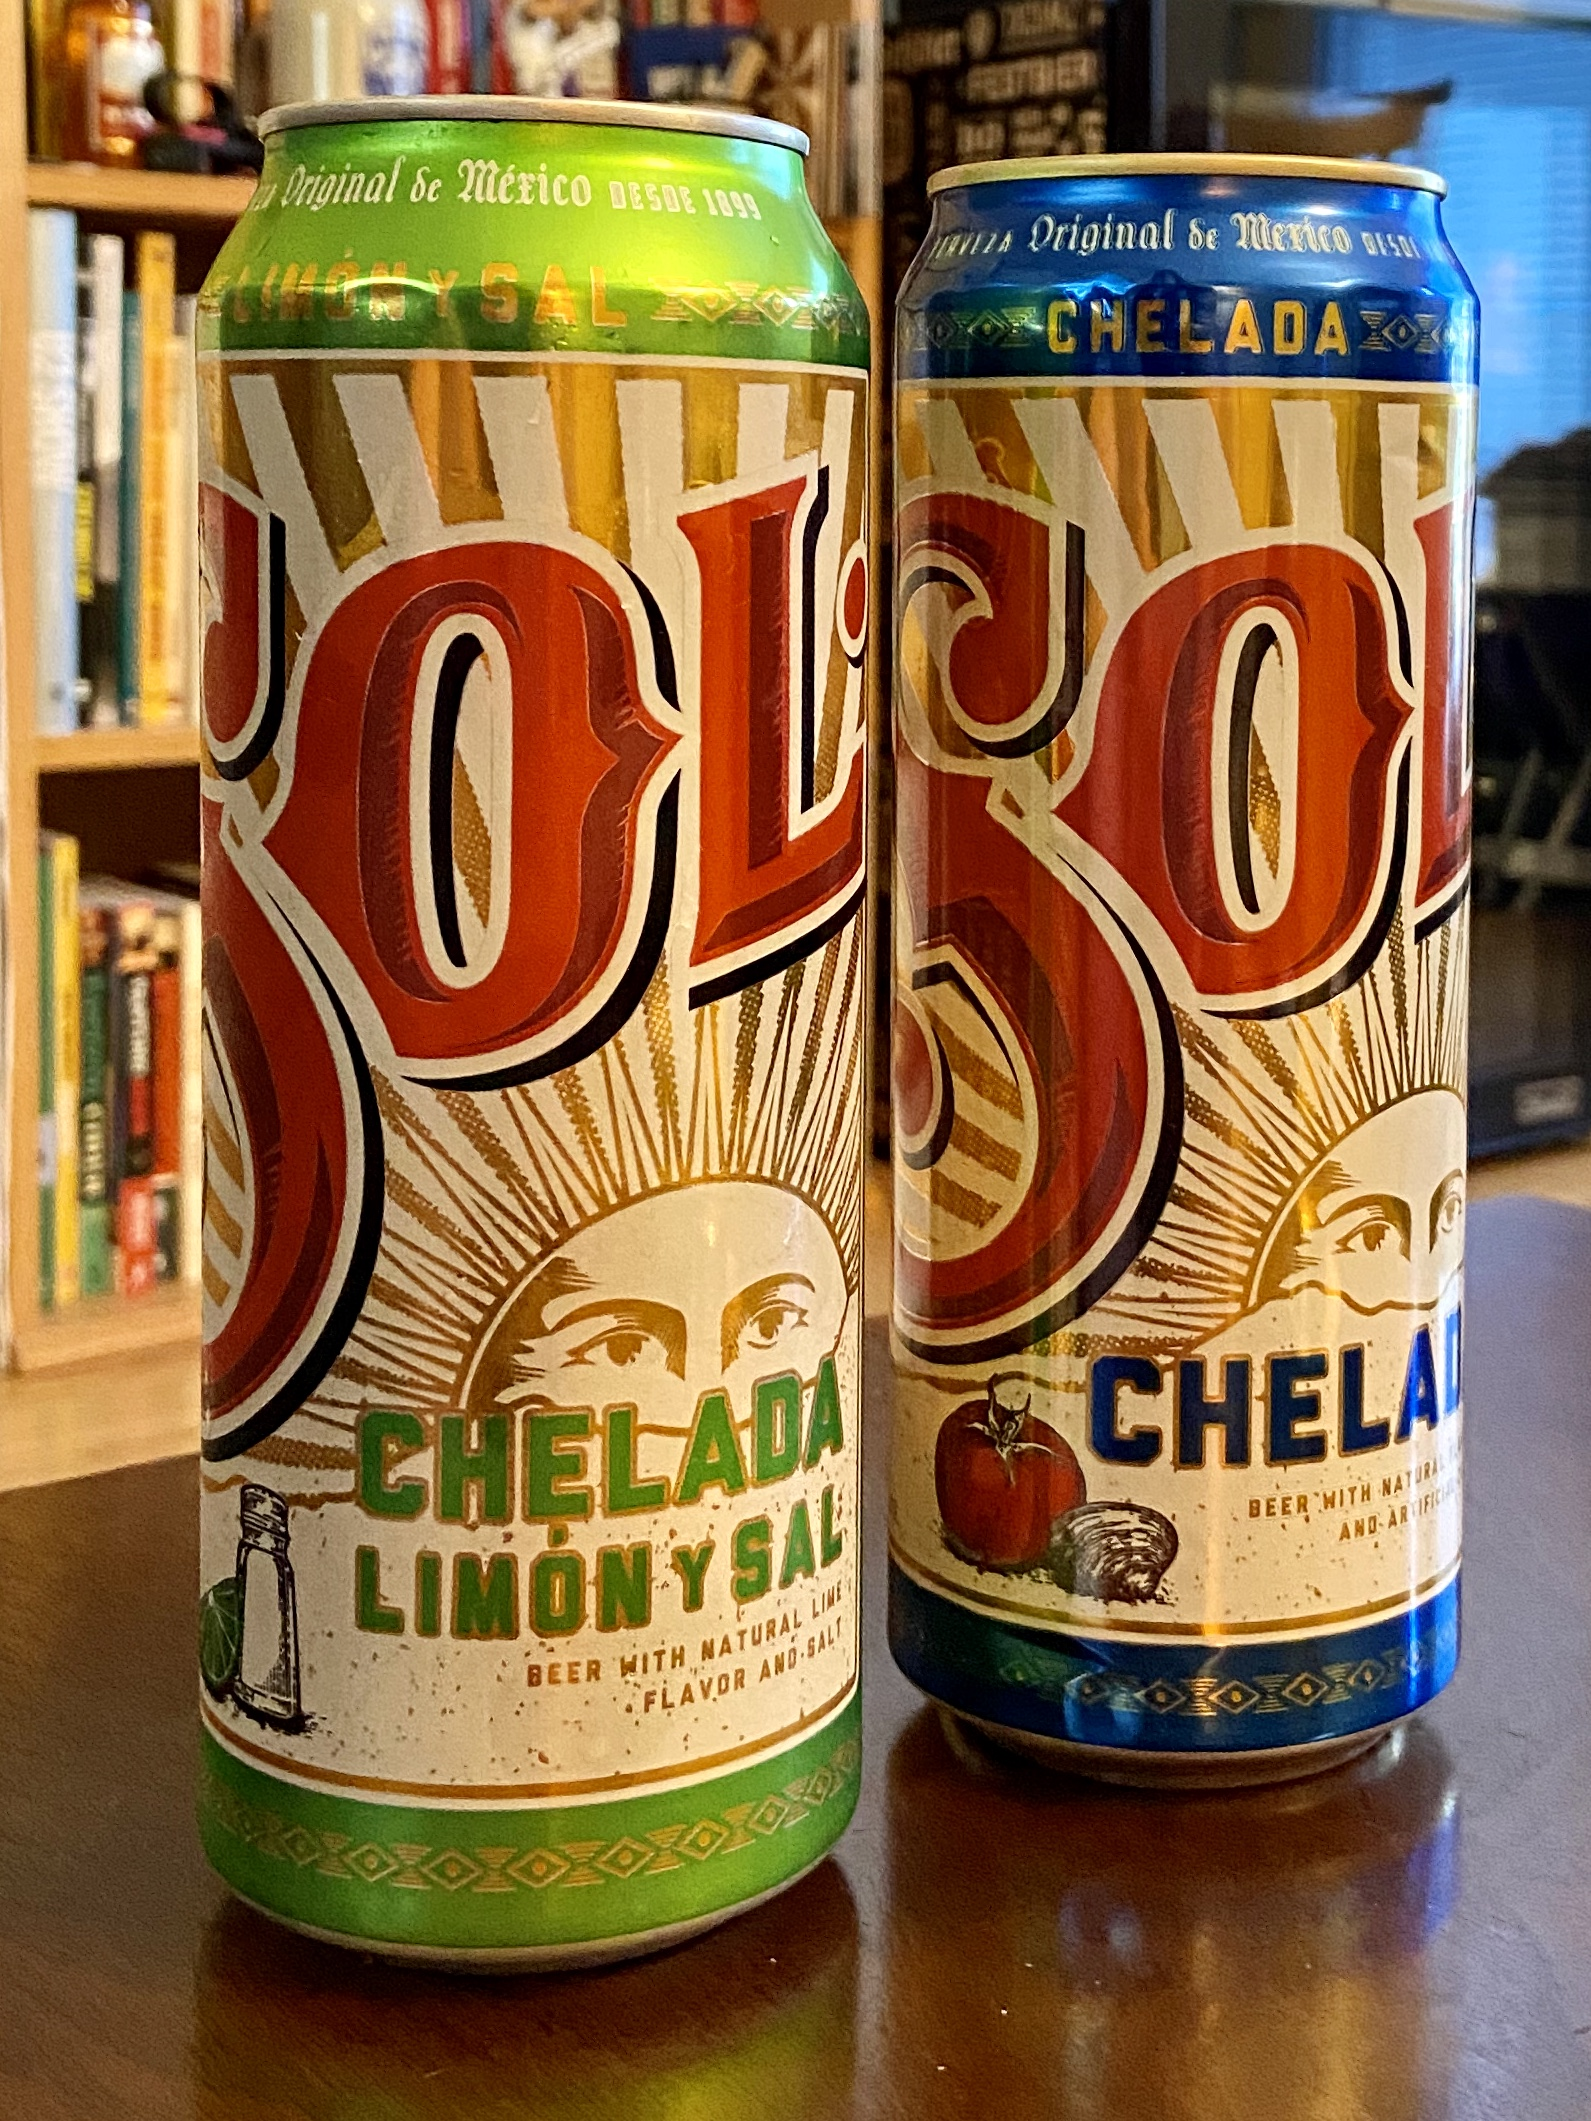 Sol Chelada Limón y Sal Arrives in the United States